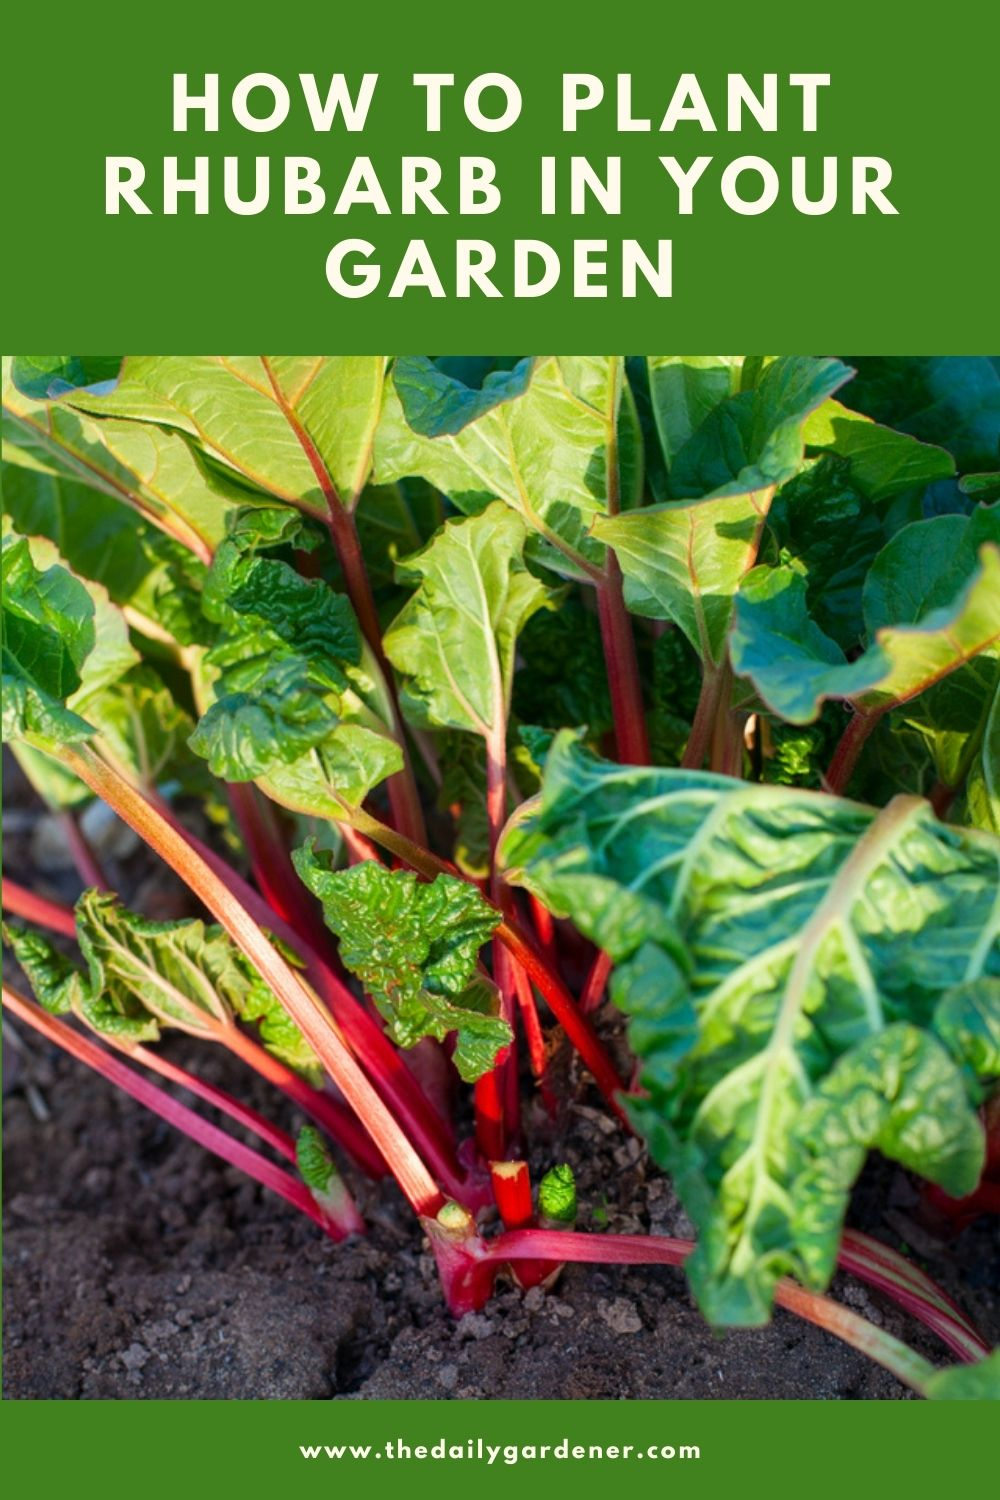 How to Plant Rhubarb in Your Garden (Tricks to Care!) 2